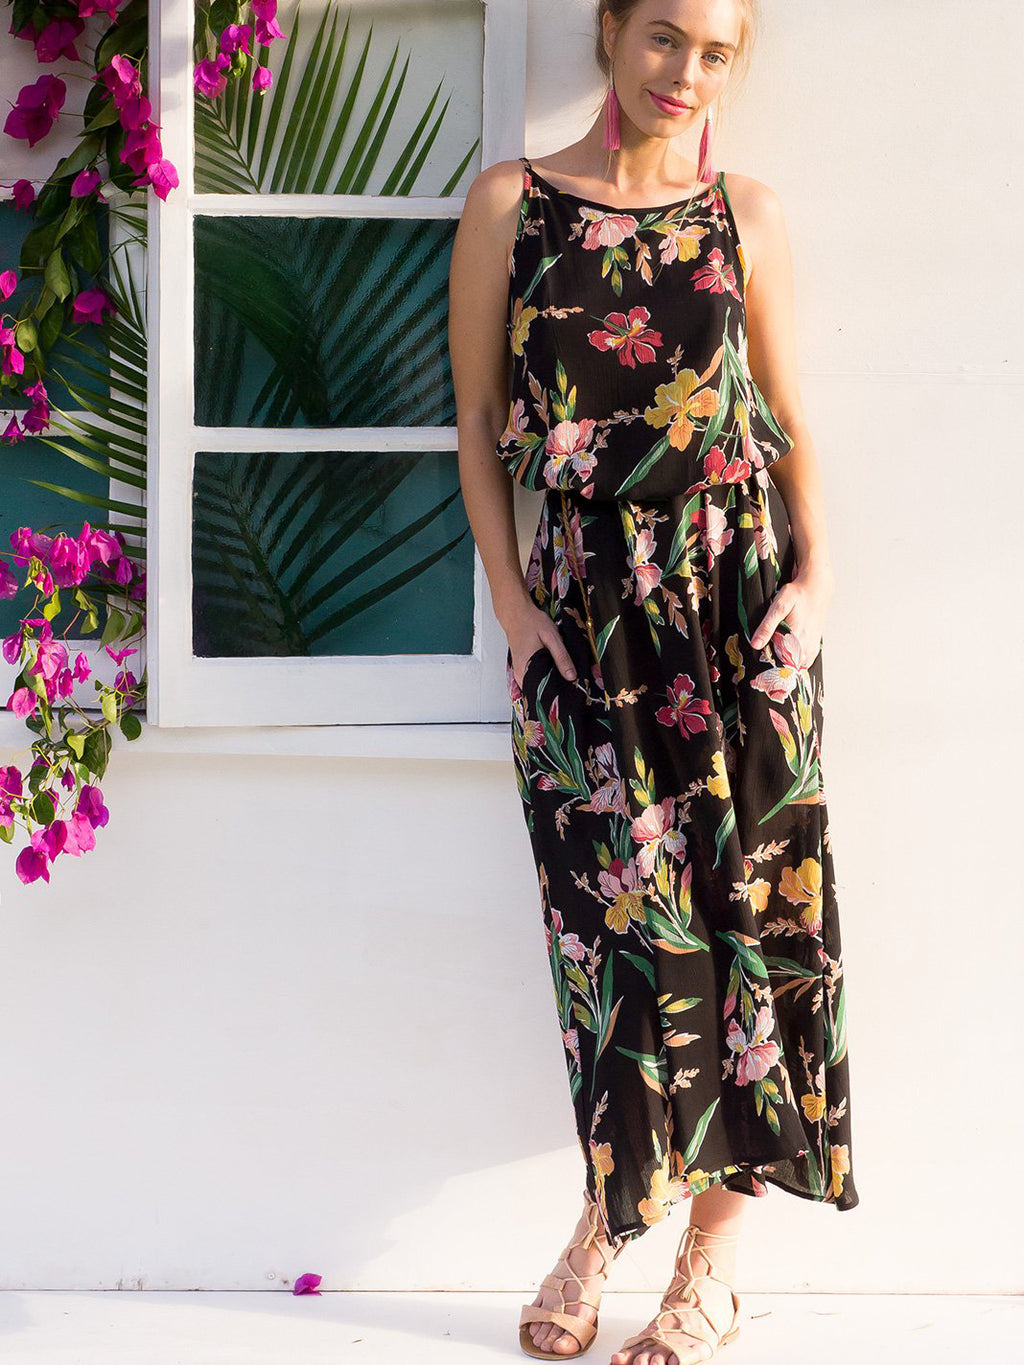 Floral printed midi dress featured in a flowy silhouette with an adjustable braided strap at the waist